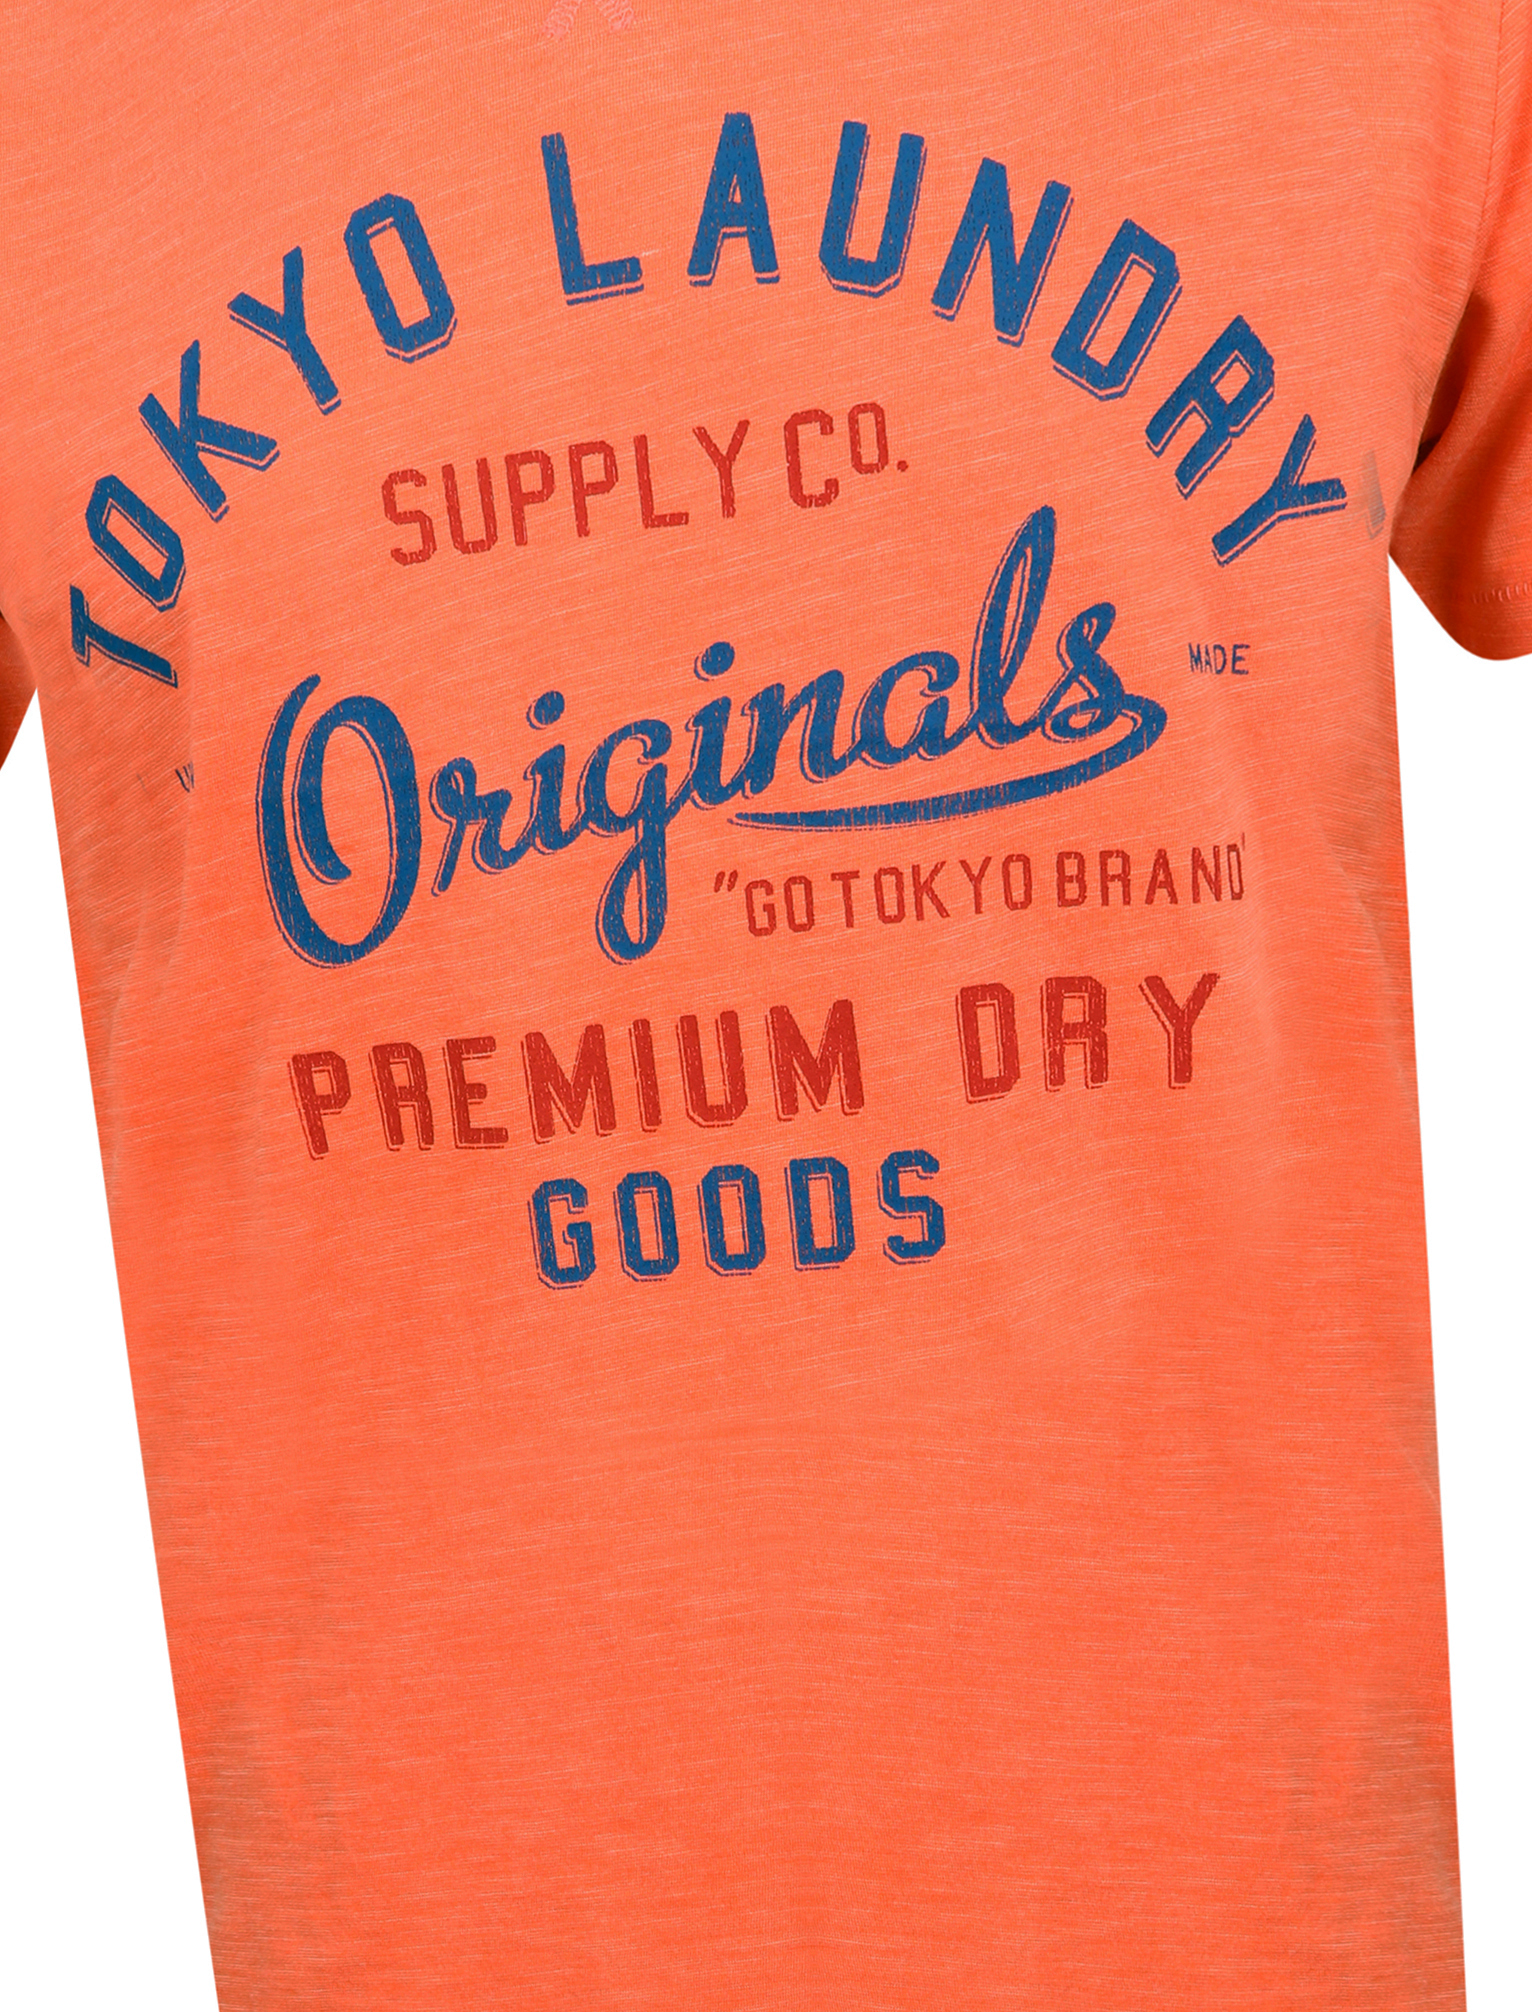 Tokyo-Laundry-Mens-Crew-Neck-T-Shirt-Vintage-Retro-Graphic-Print-Top-Size-S-XXL miniatura 89